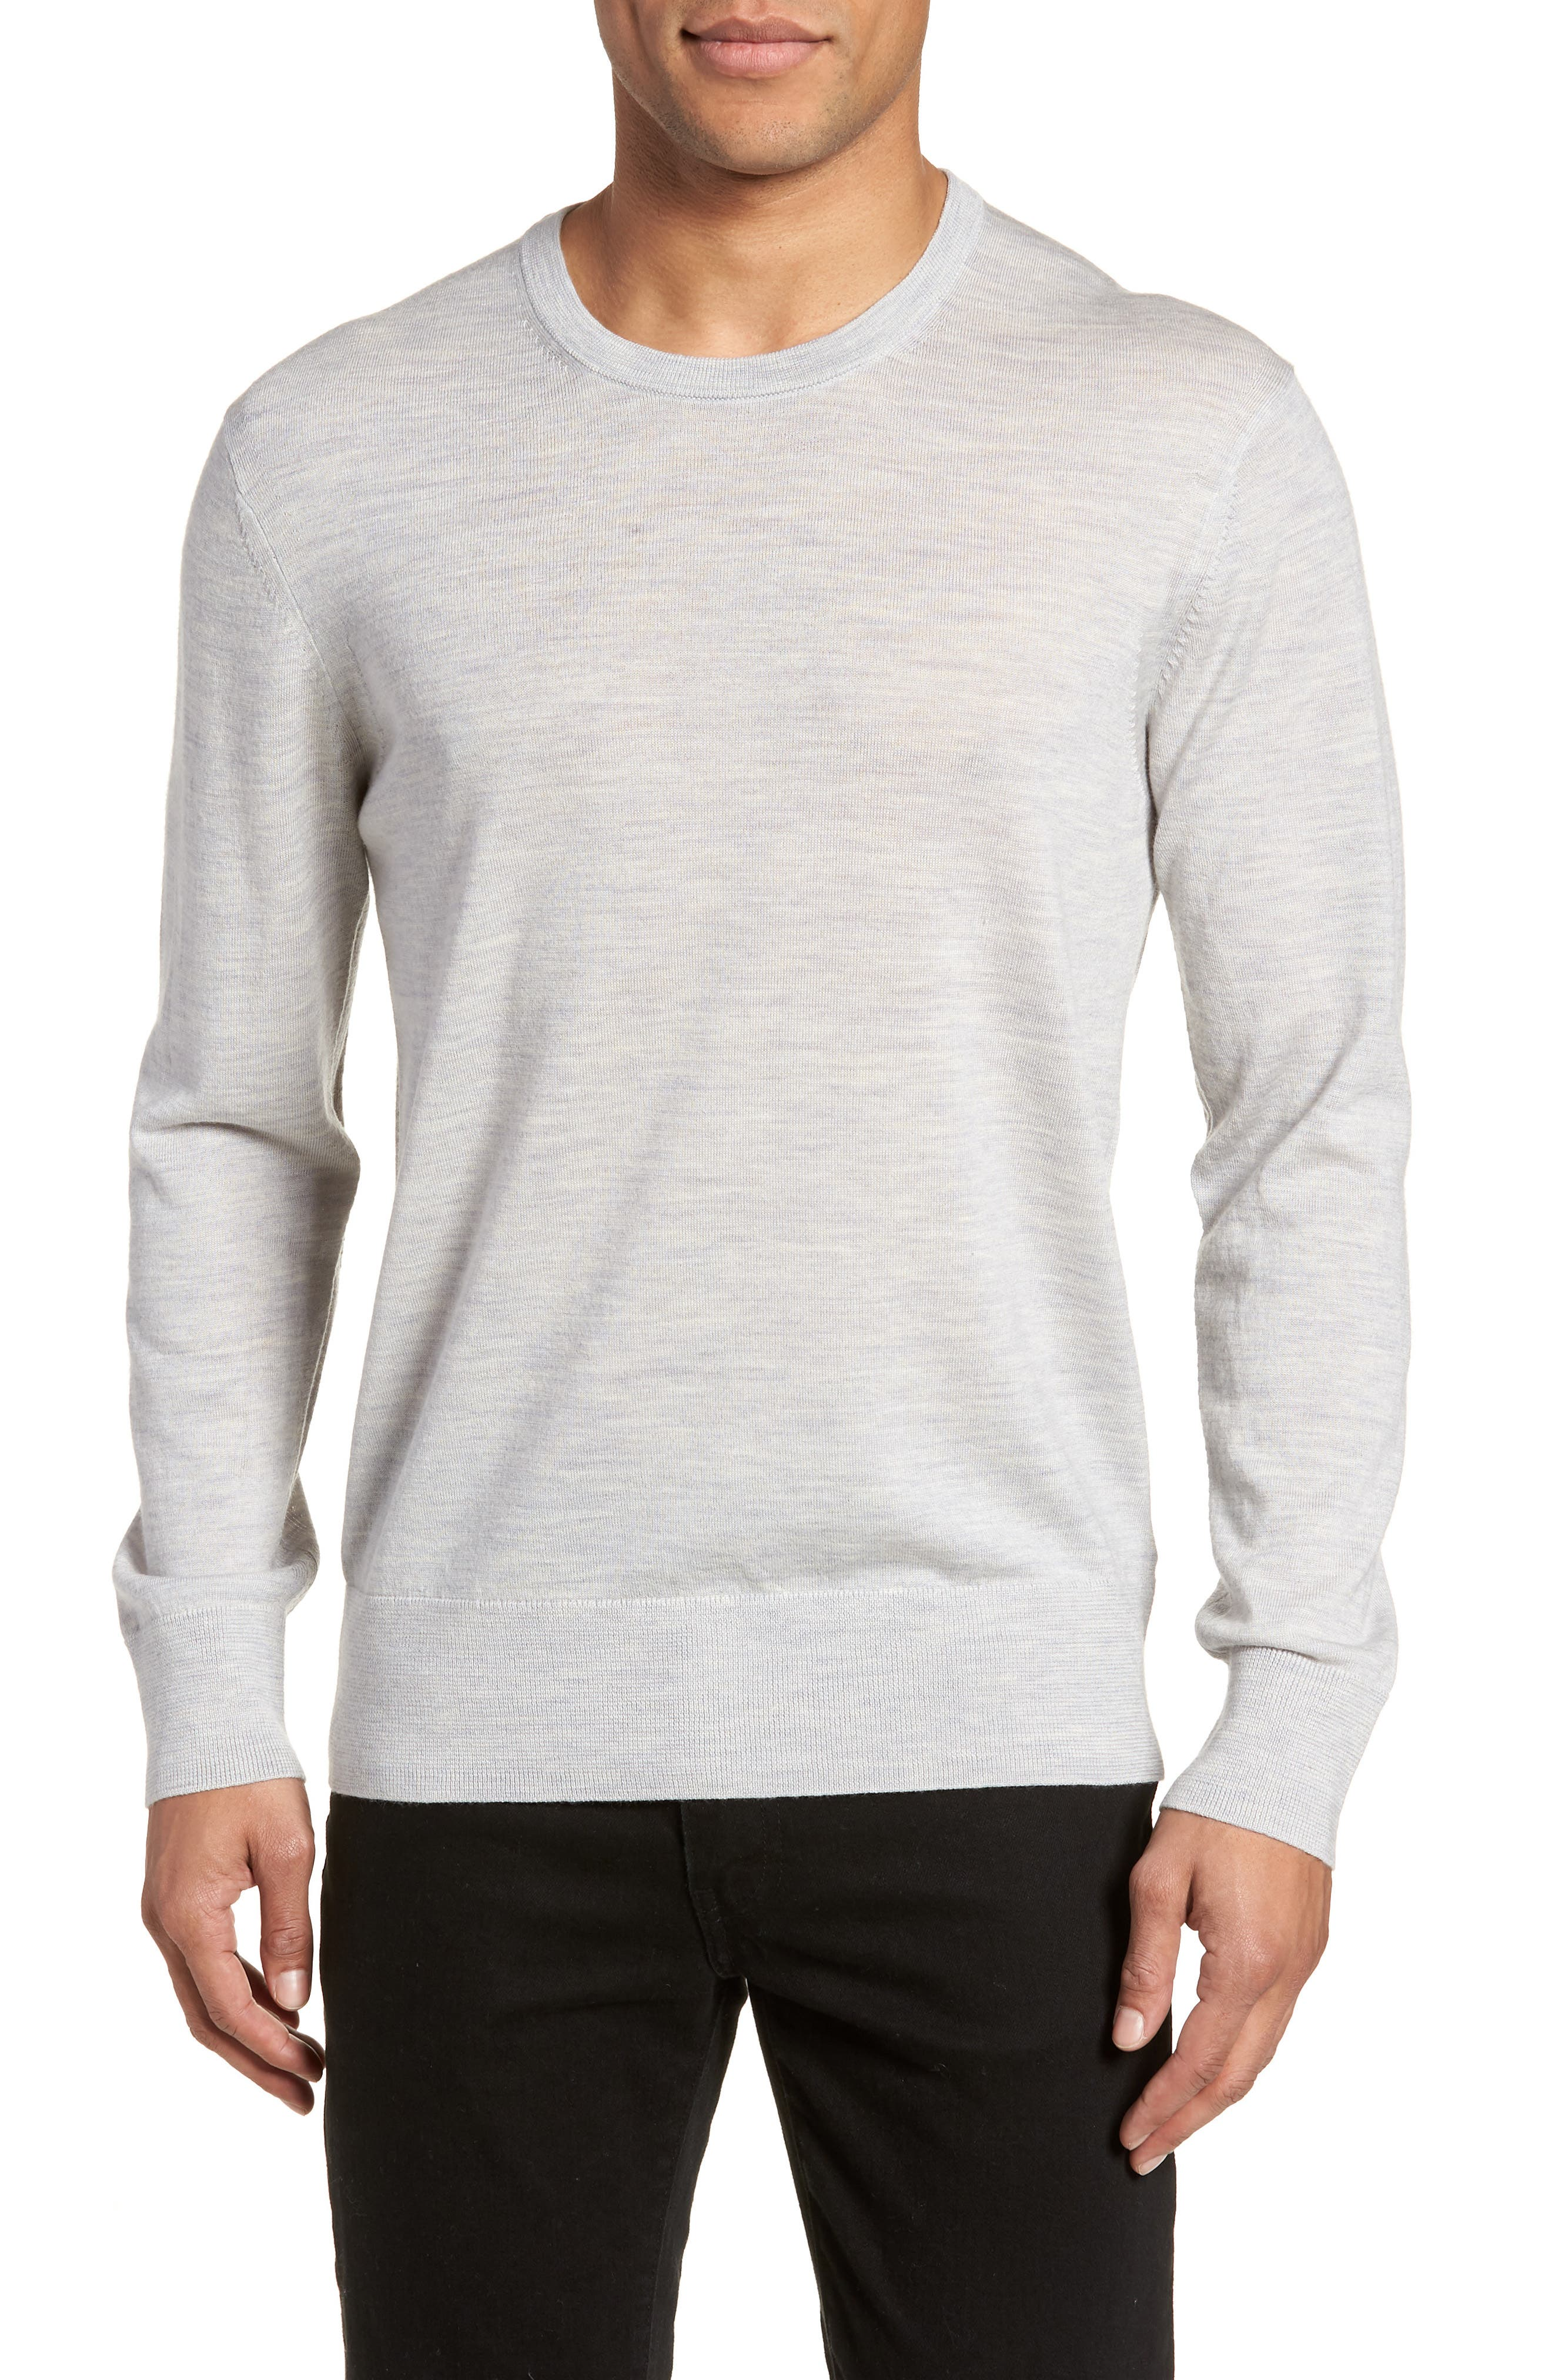 Lang Crewneck Wool Sweater,                         Main,                         color, Light Grey Marl